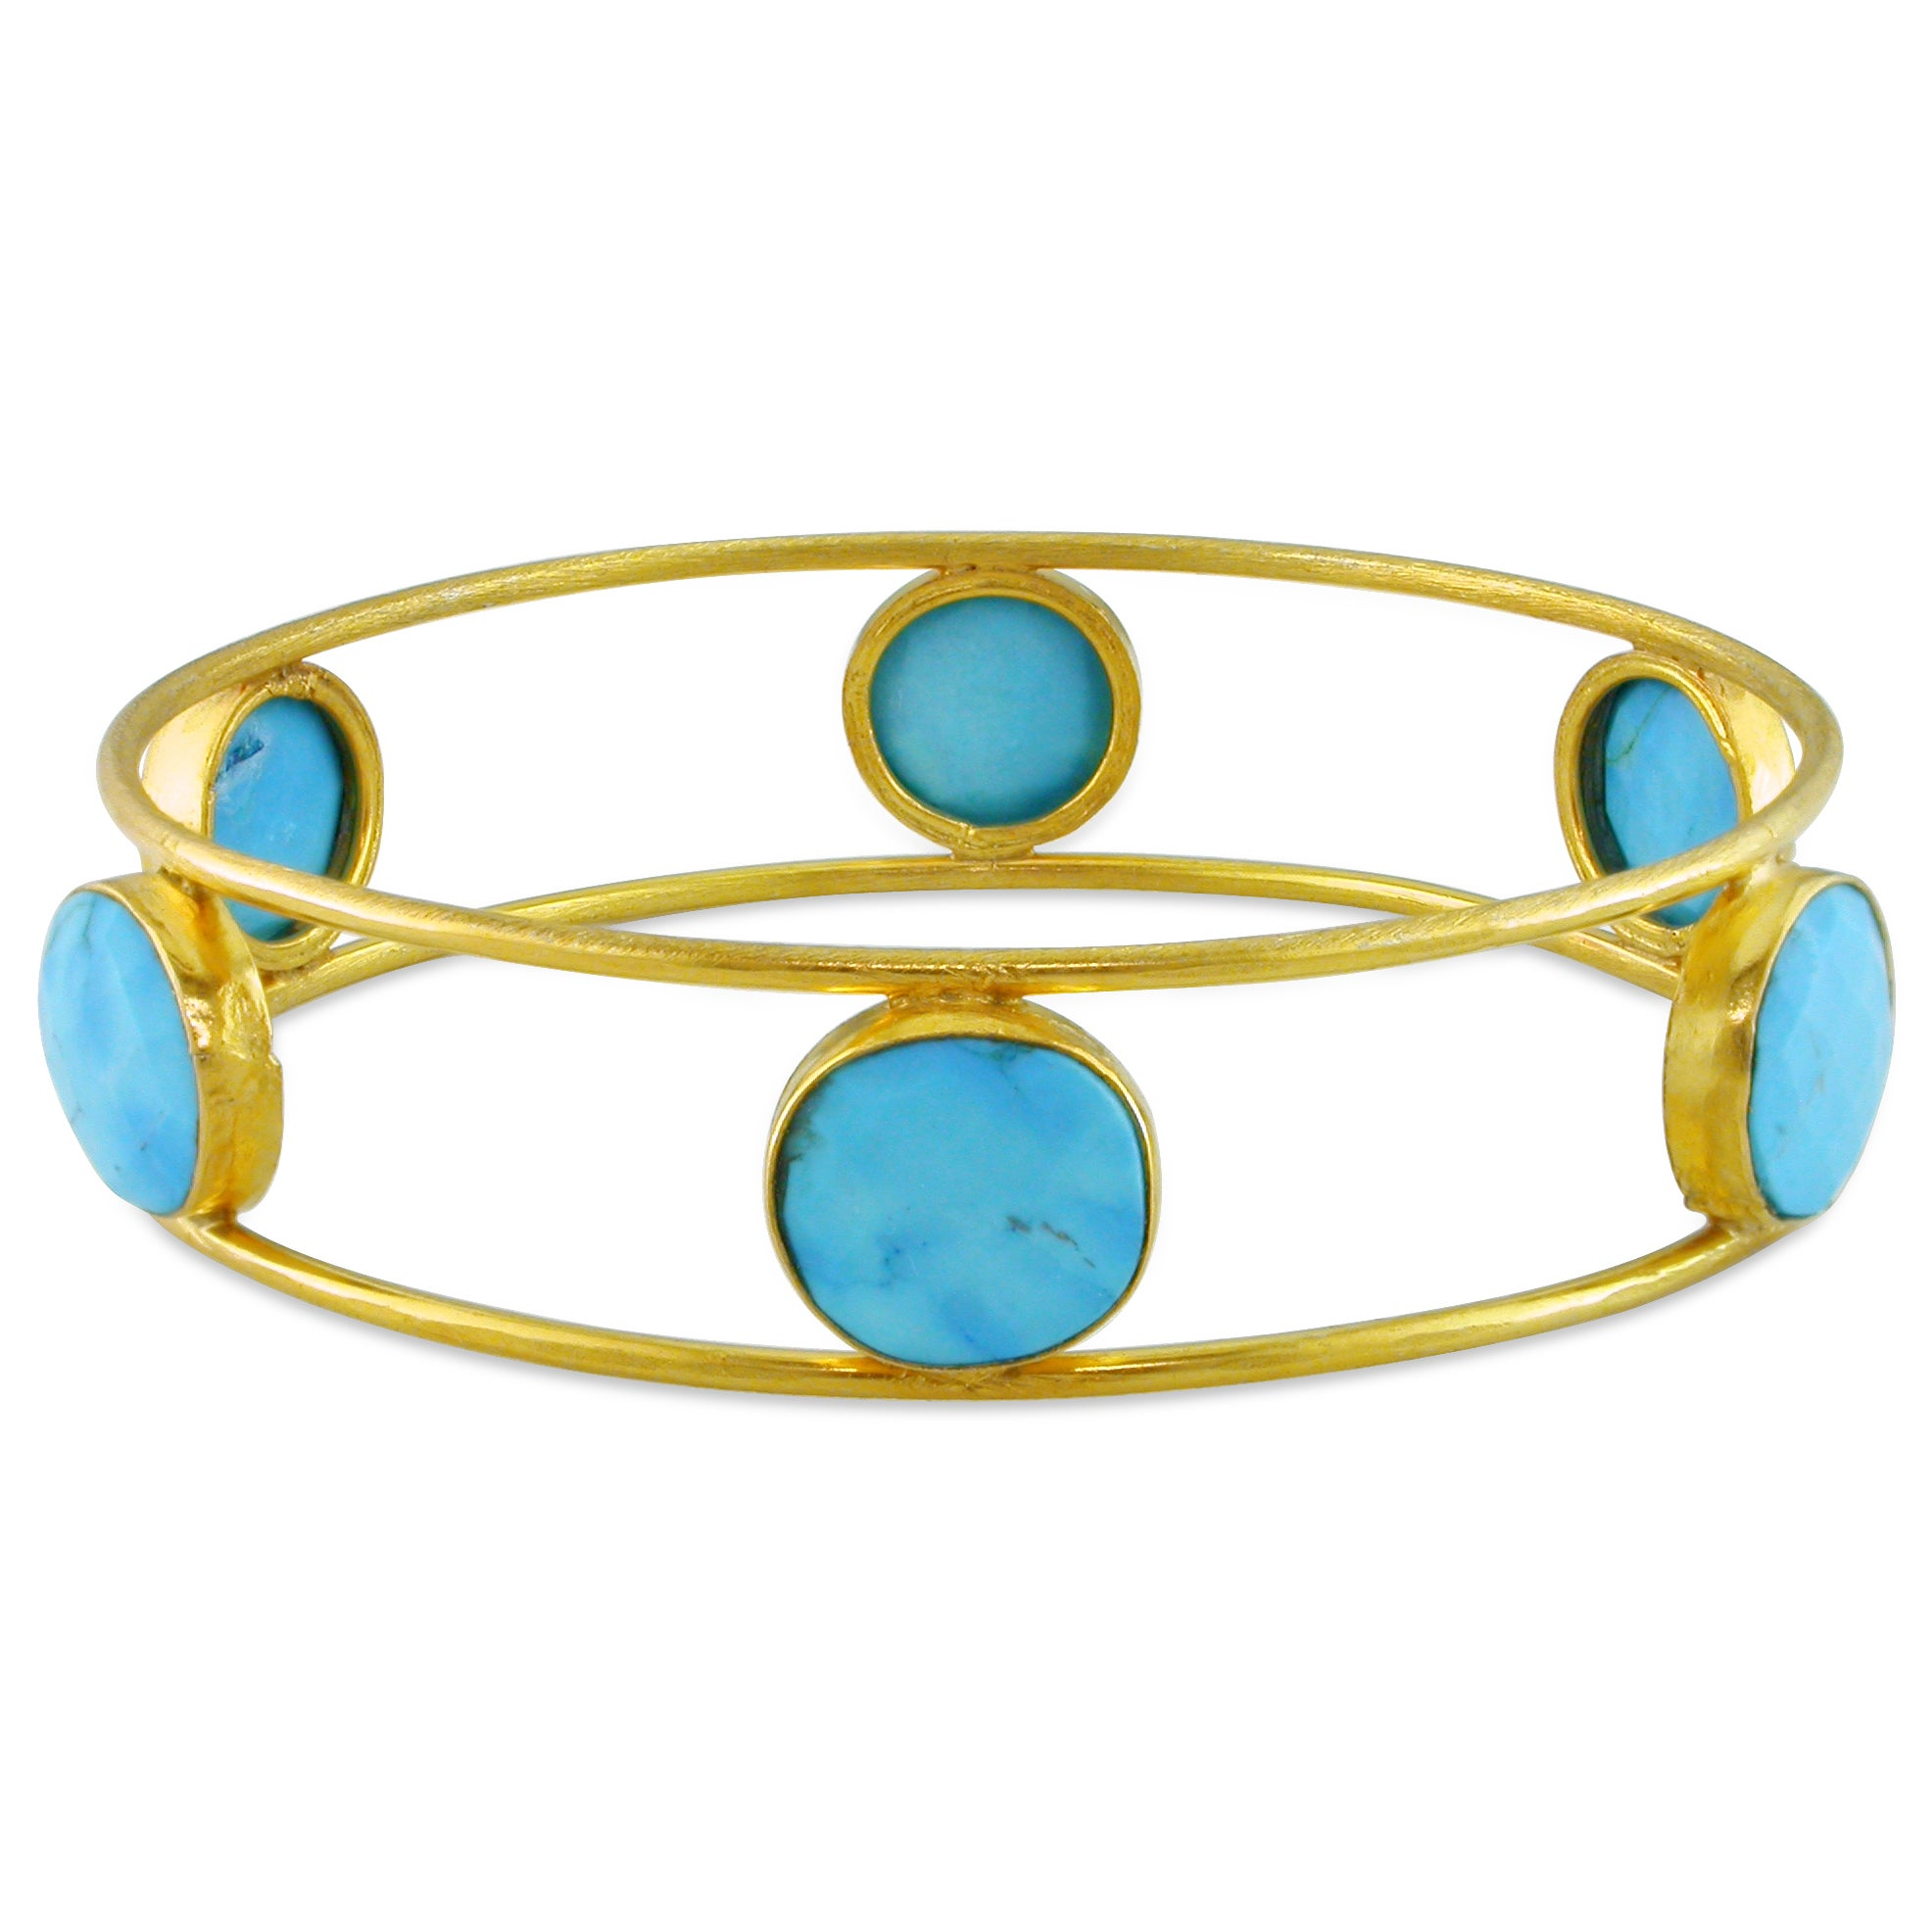 Miadora 22k Yellow Gold-plated Silver Turquoise Bangle